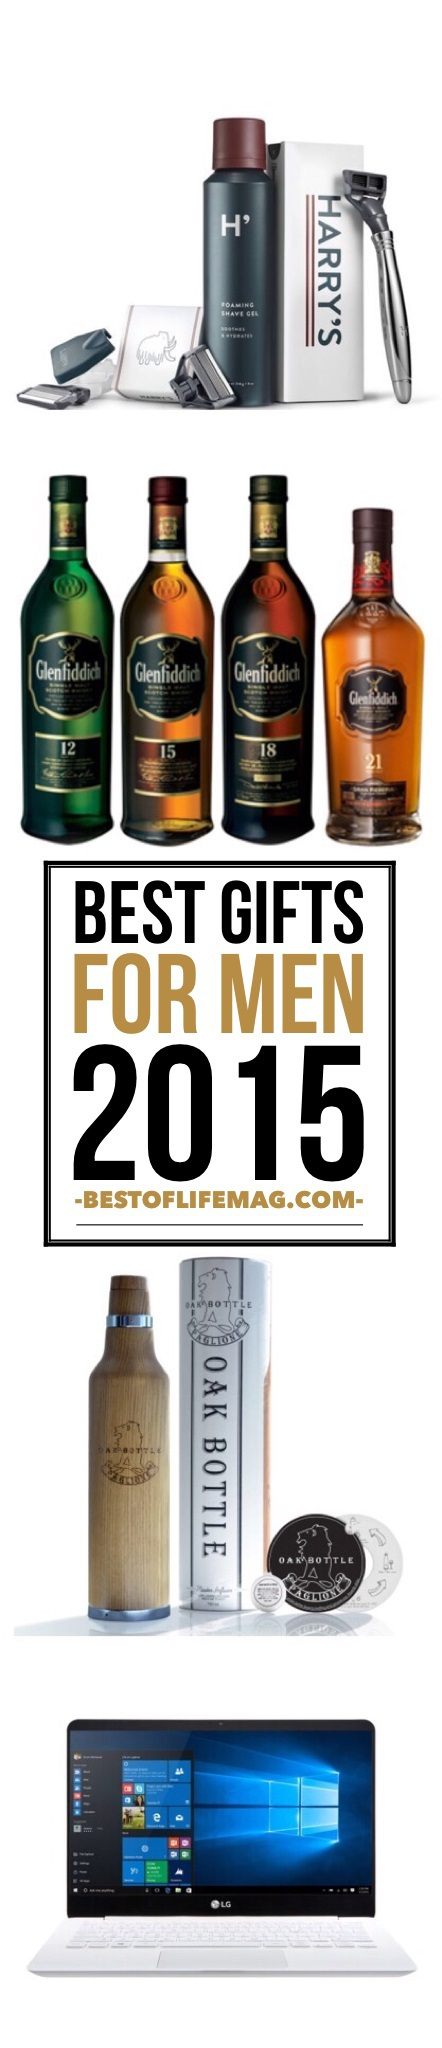 Best Gifts For Men The Best Of Life Magazine Luxury Lifestyle Magazine